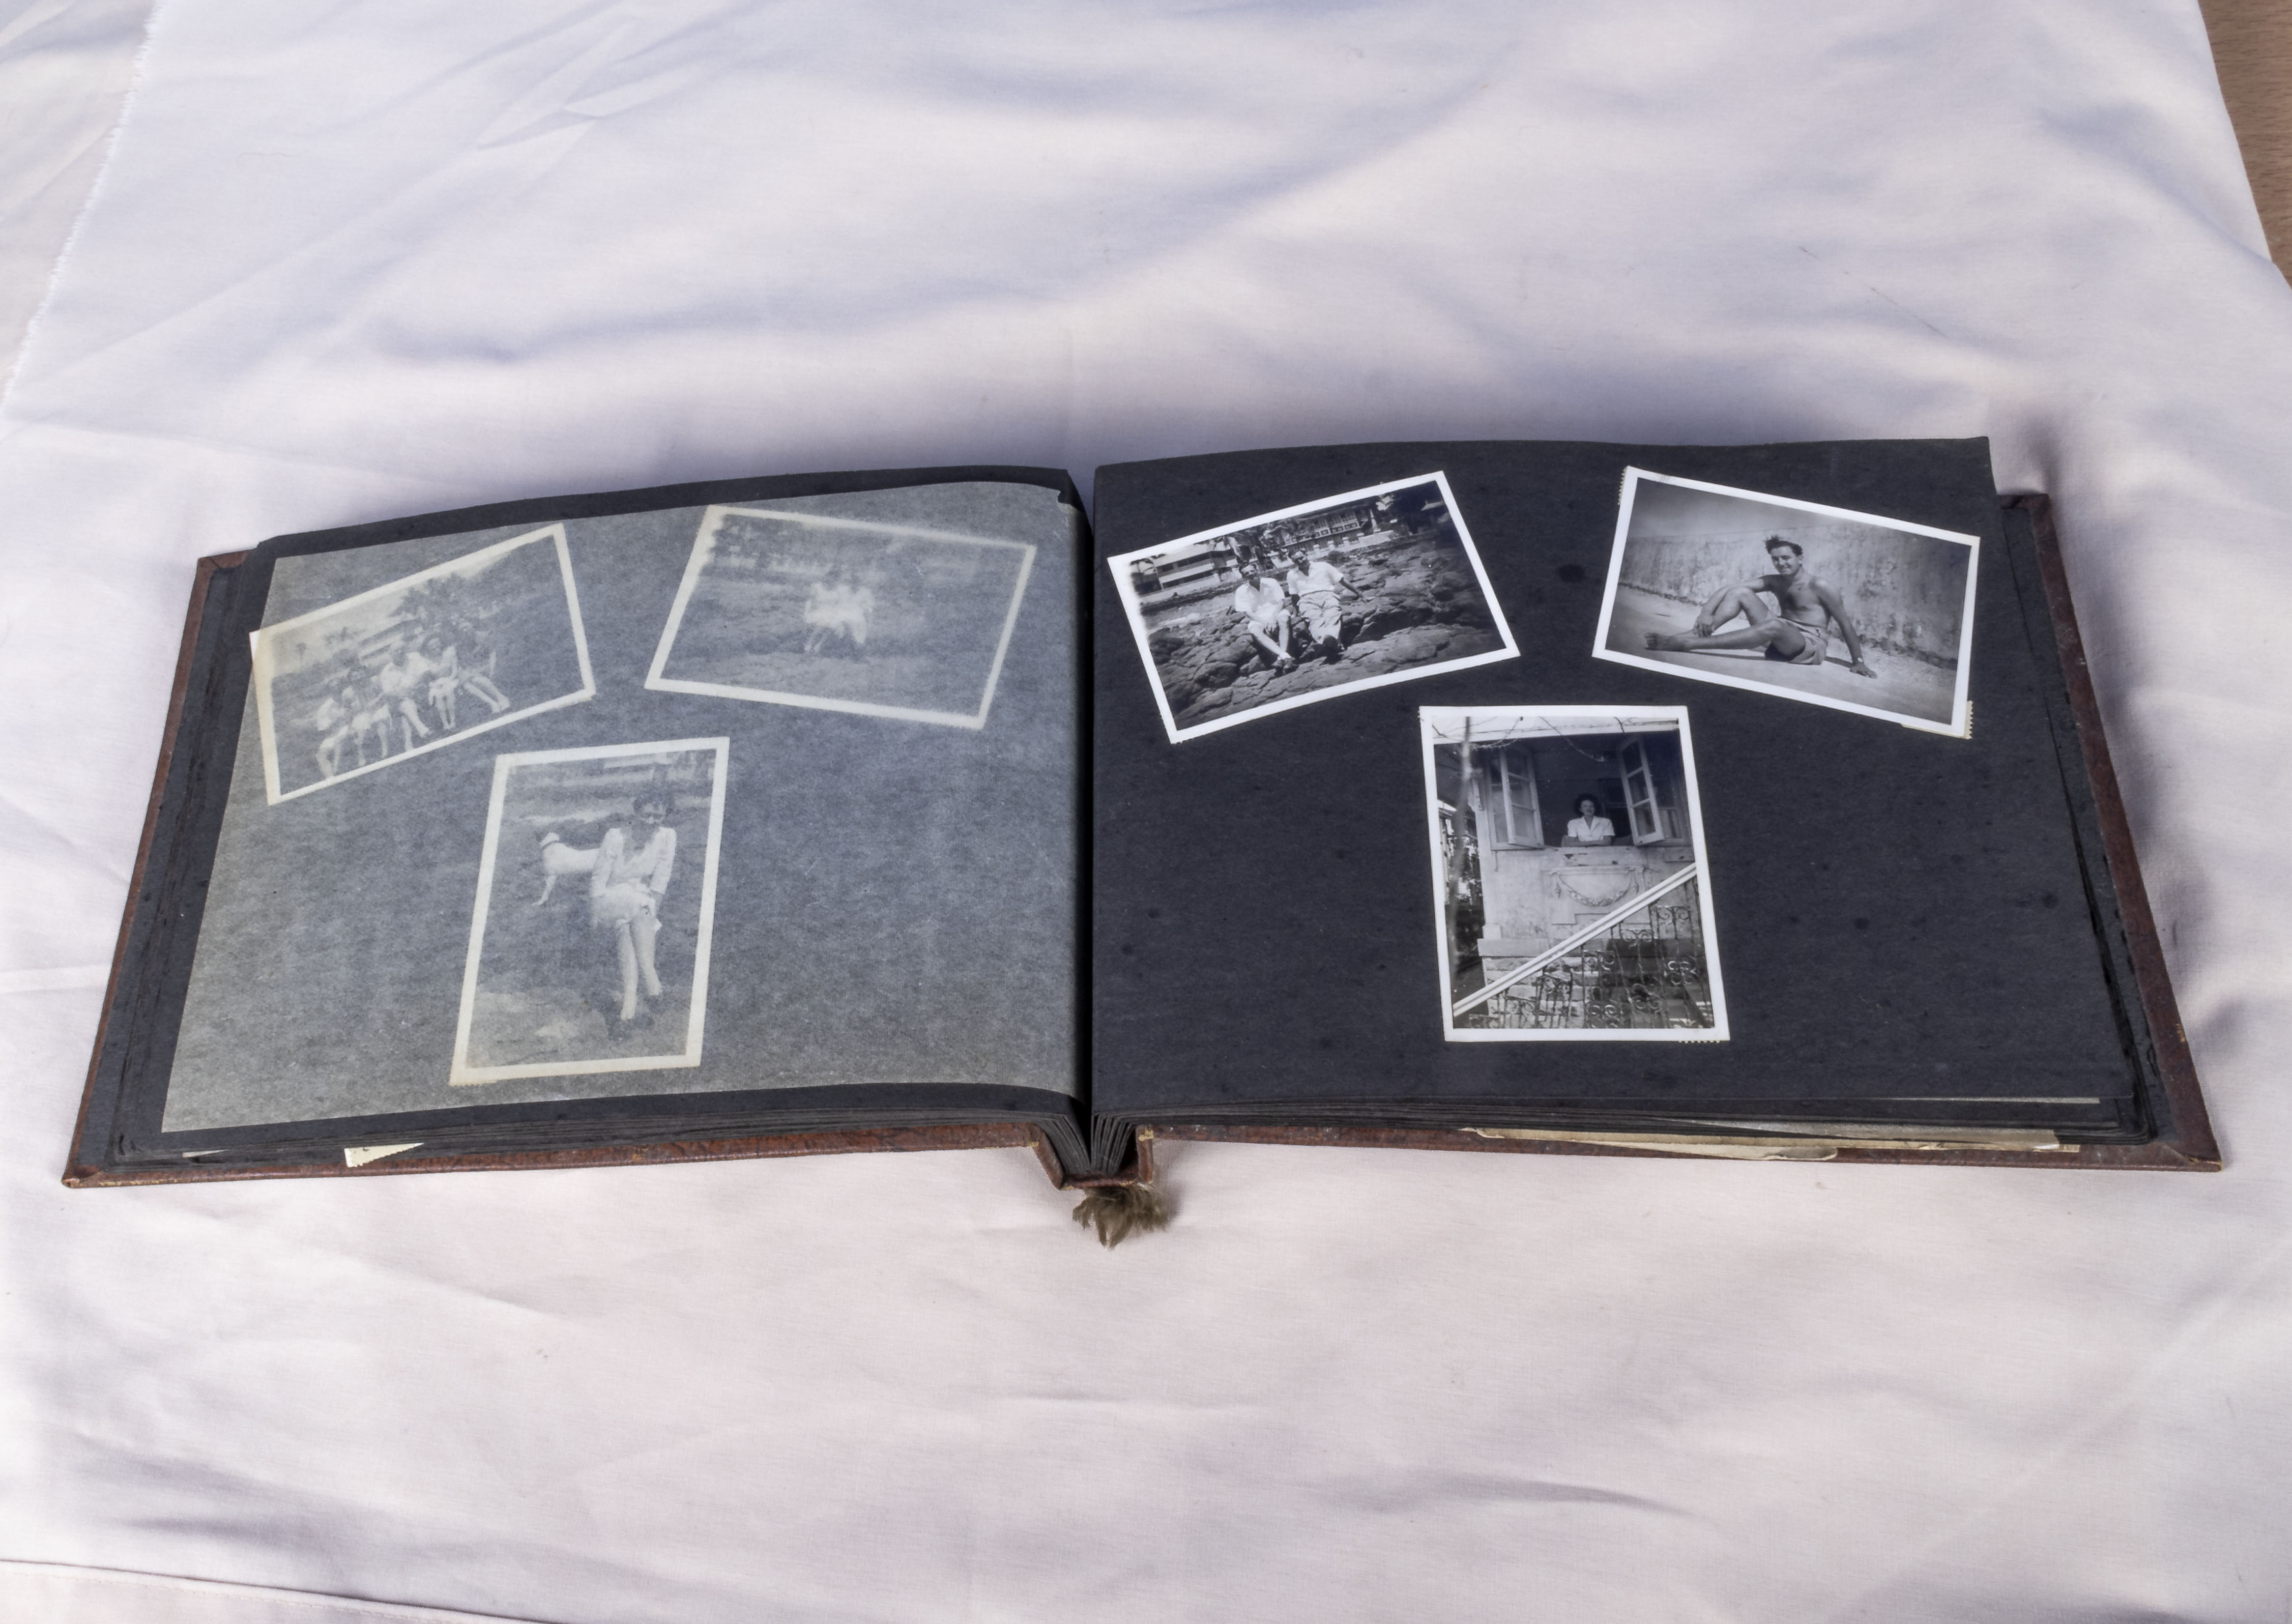 Military interest over 130 vintage photographs in album relating to the 1939-45 war years showing